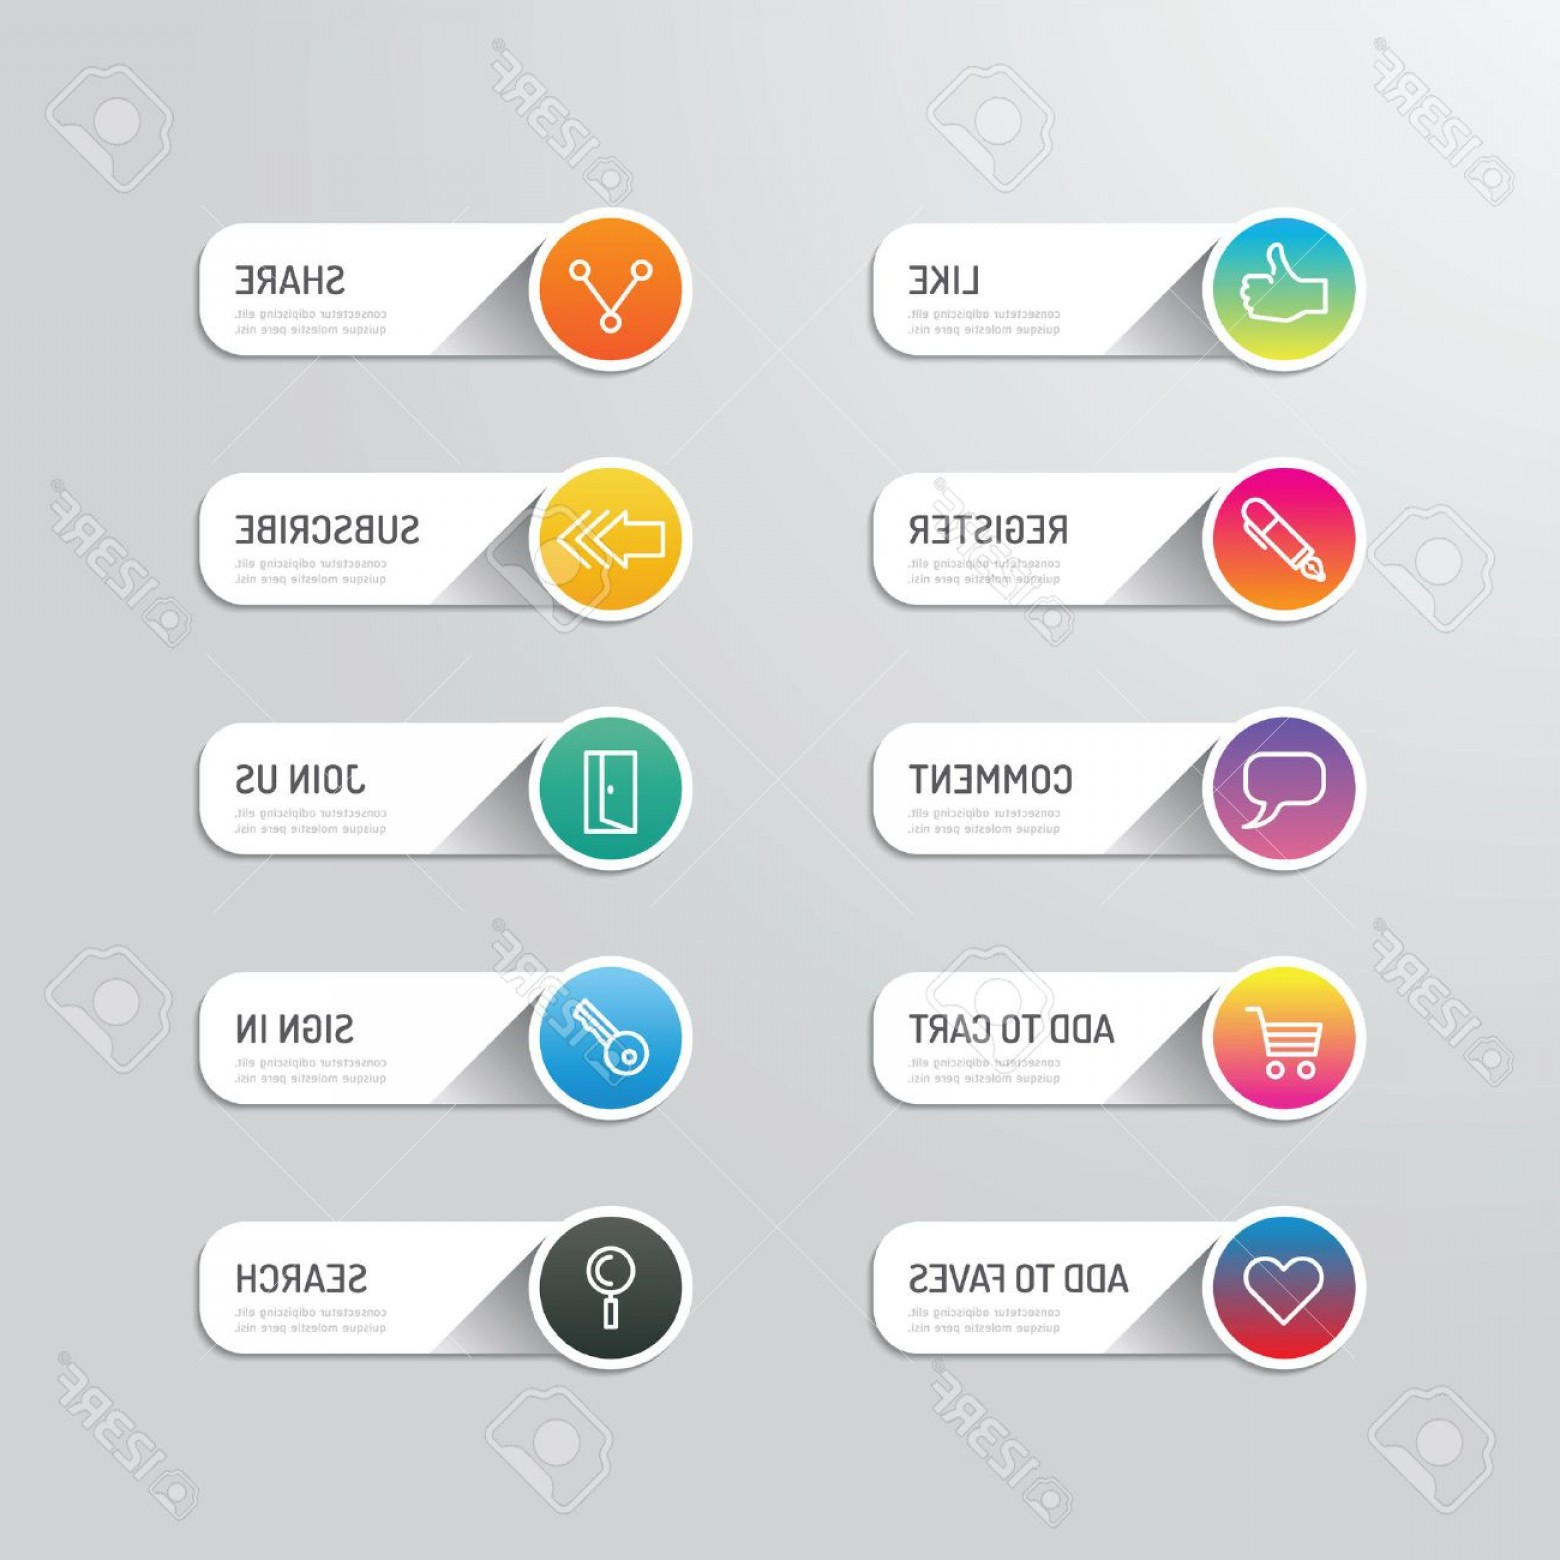 Button Icon Vector: Photostock Vector Modern Banner Button With Social Icon Design Options Vector Illustration Can Be Used For Infographic